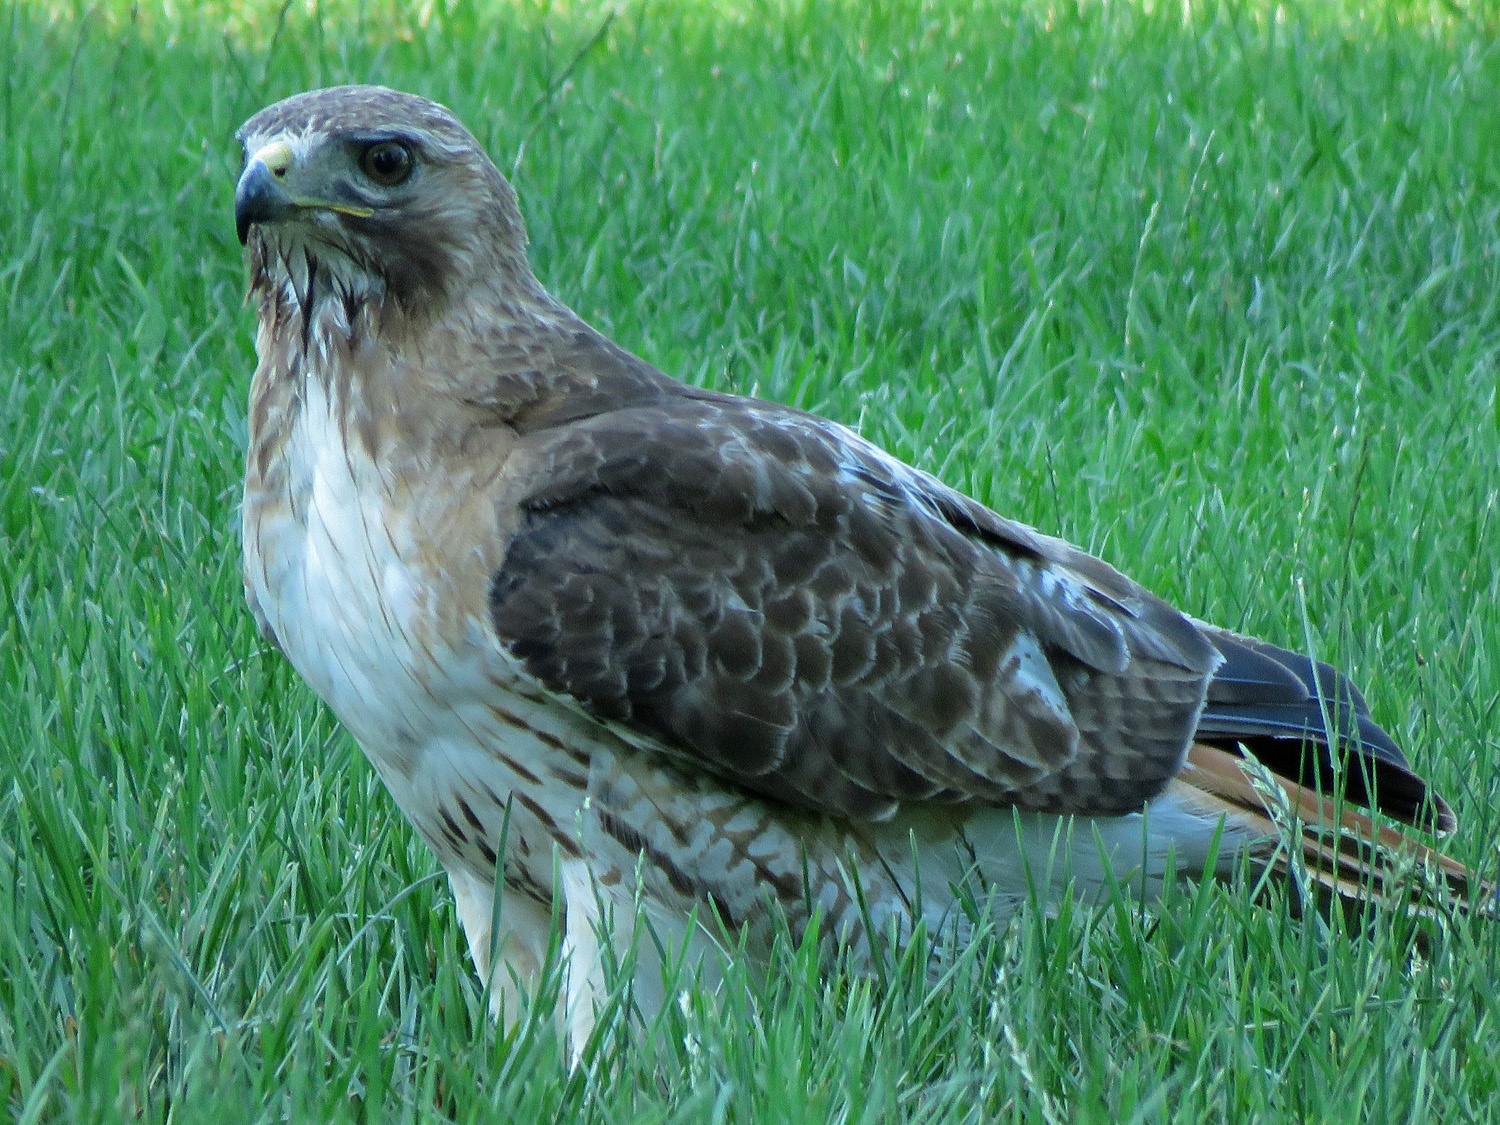 George Red-Tailed Hawk, North Meadow, Central Park, June 23, 2019